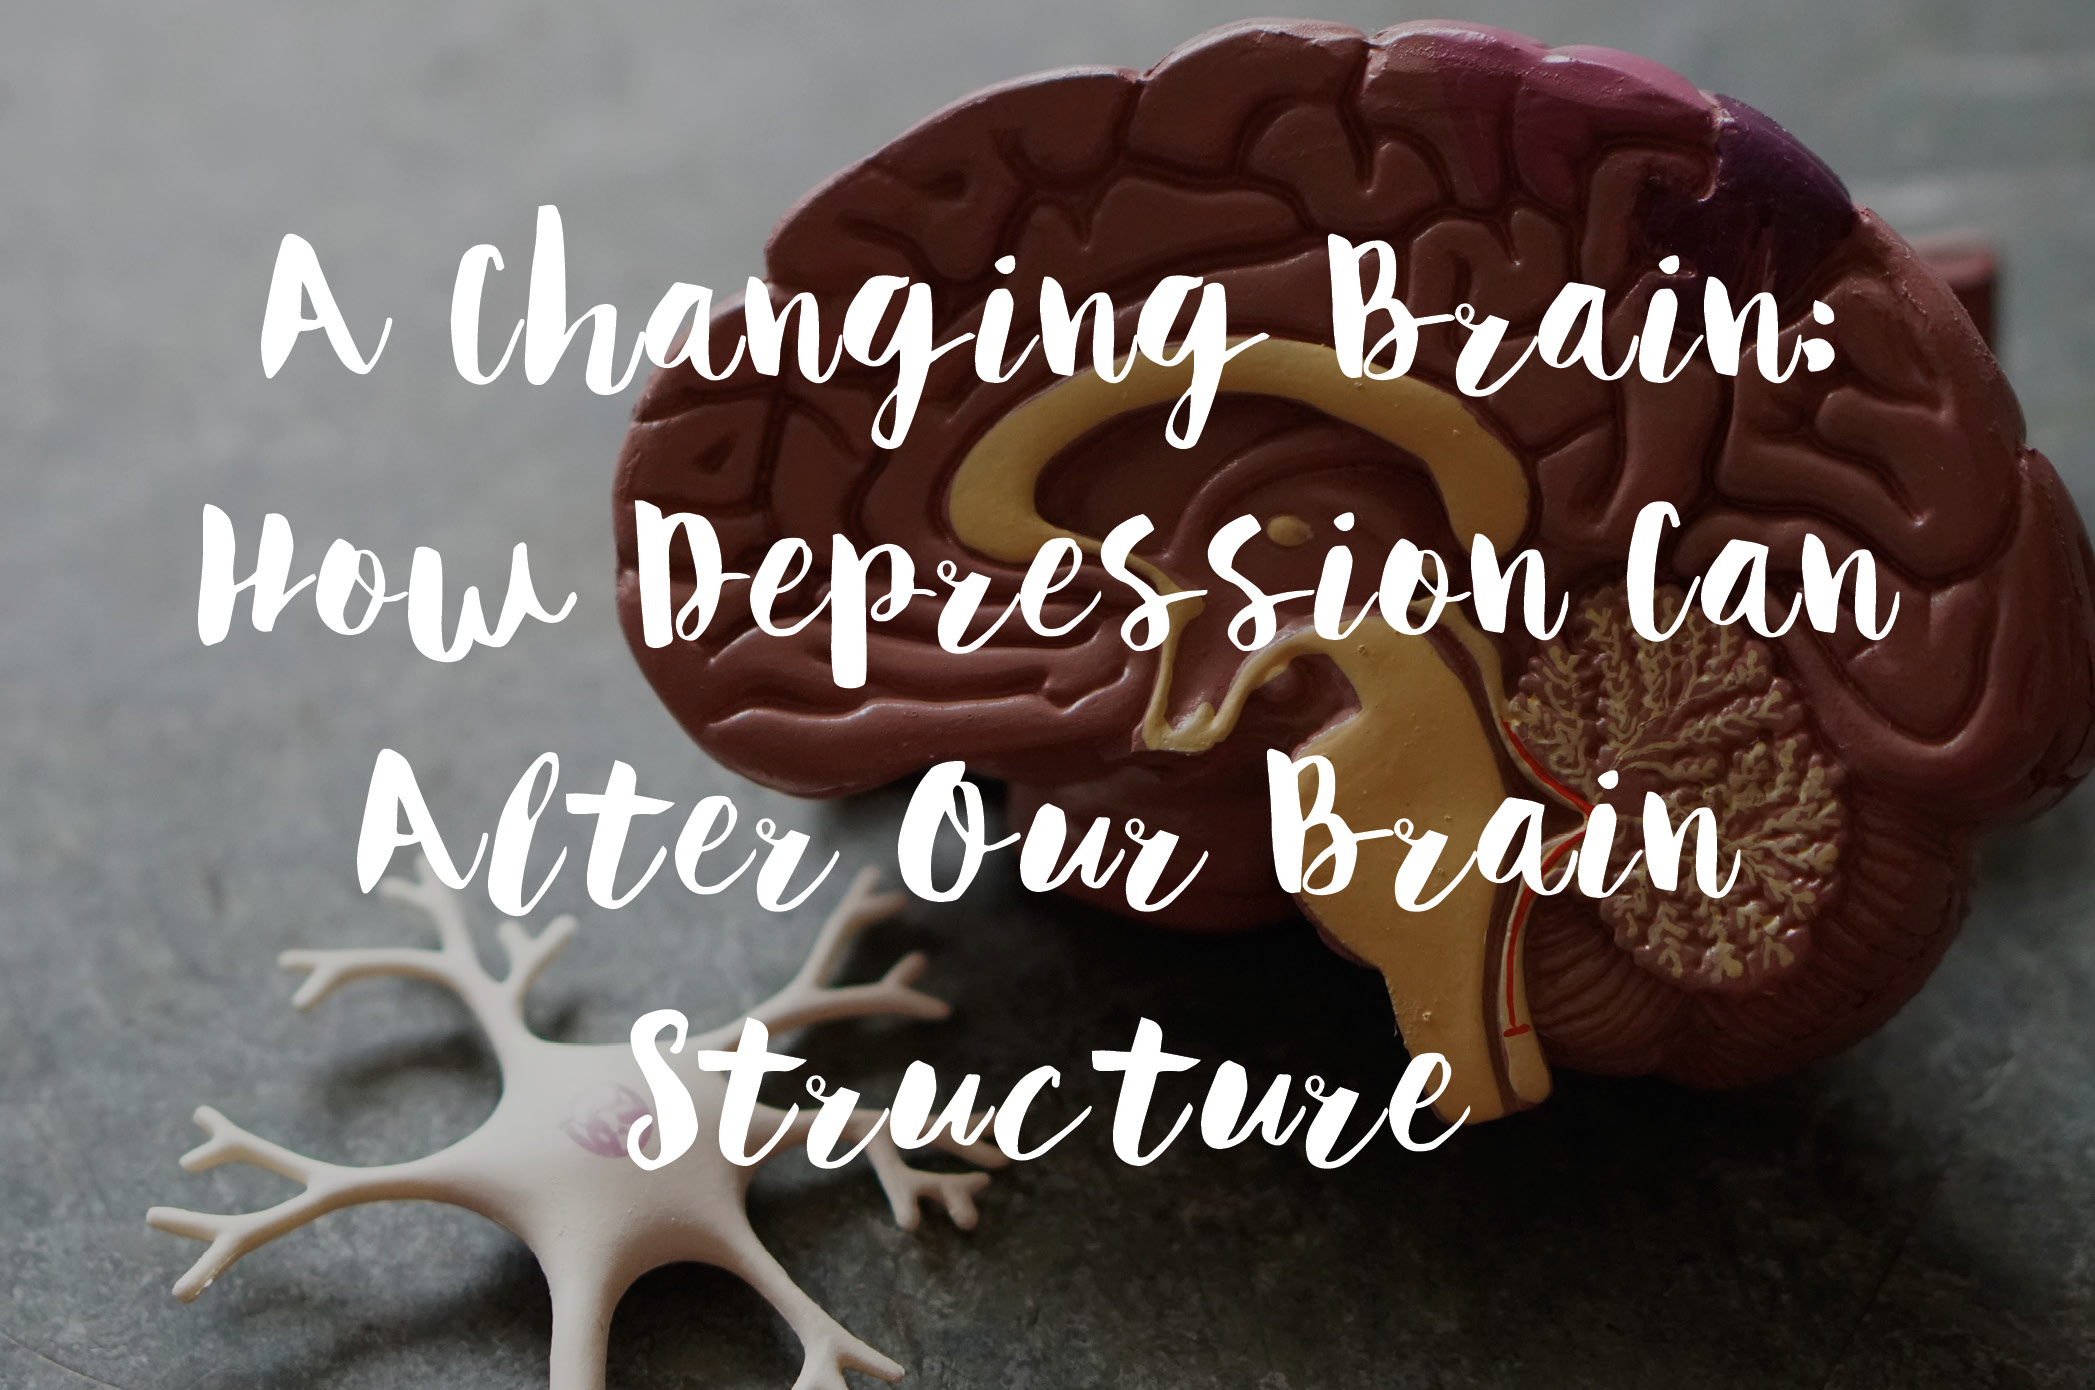 A Changing Brain: How Depression Can Alter Our Brain Structure